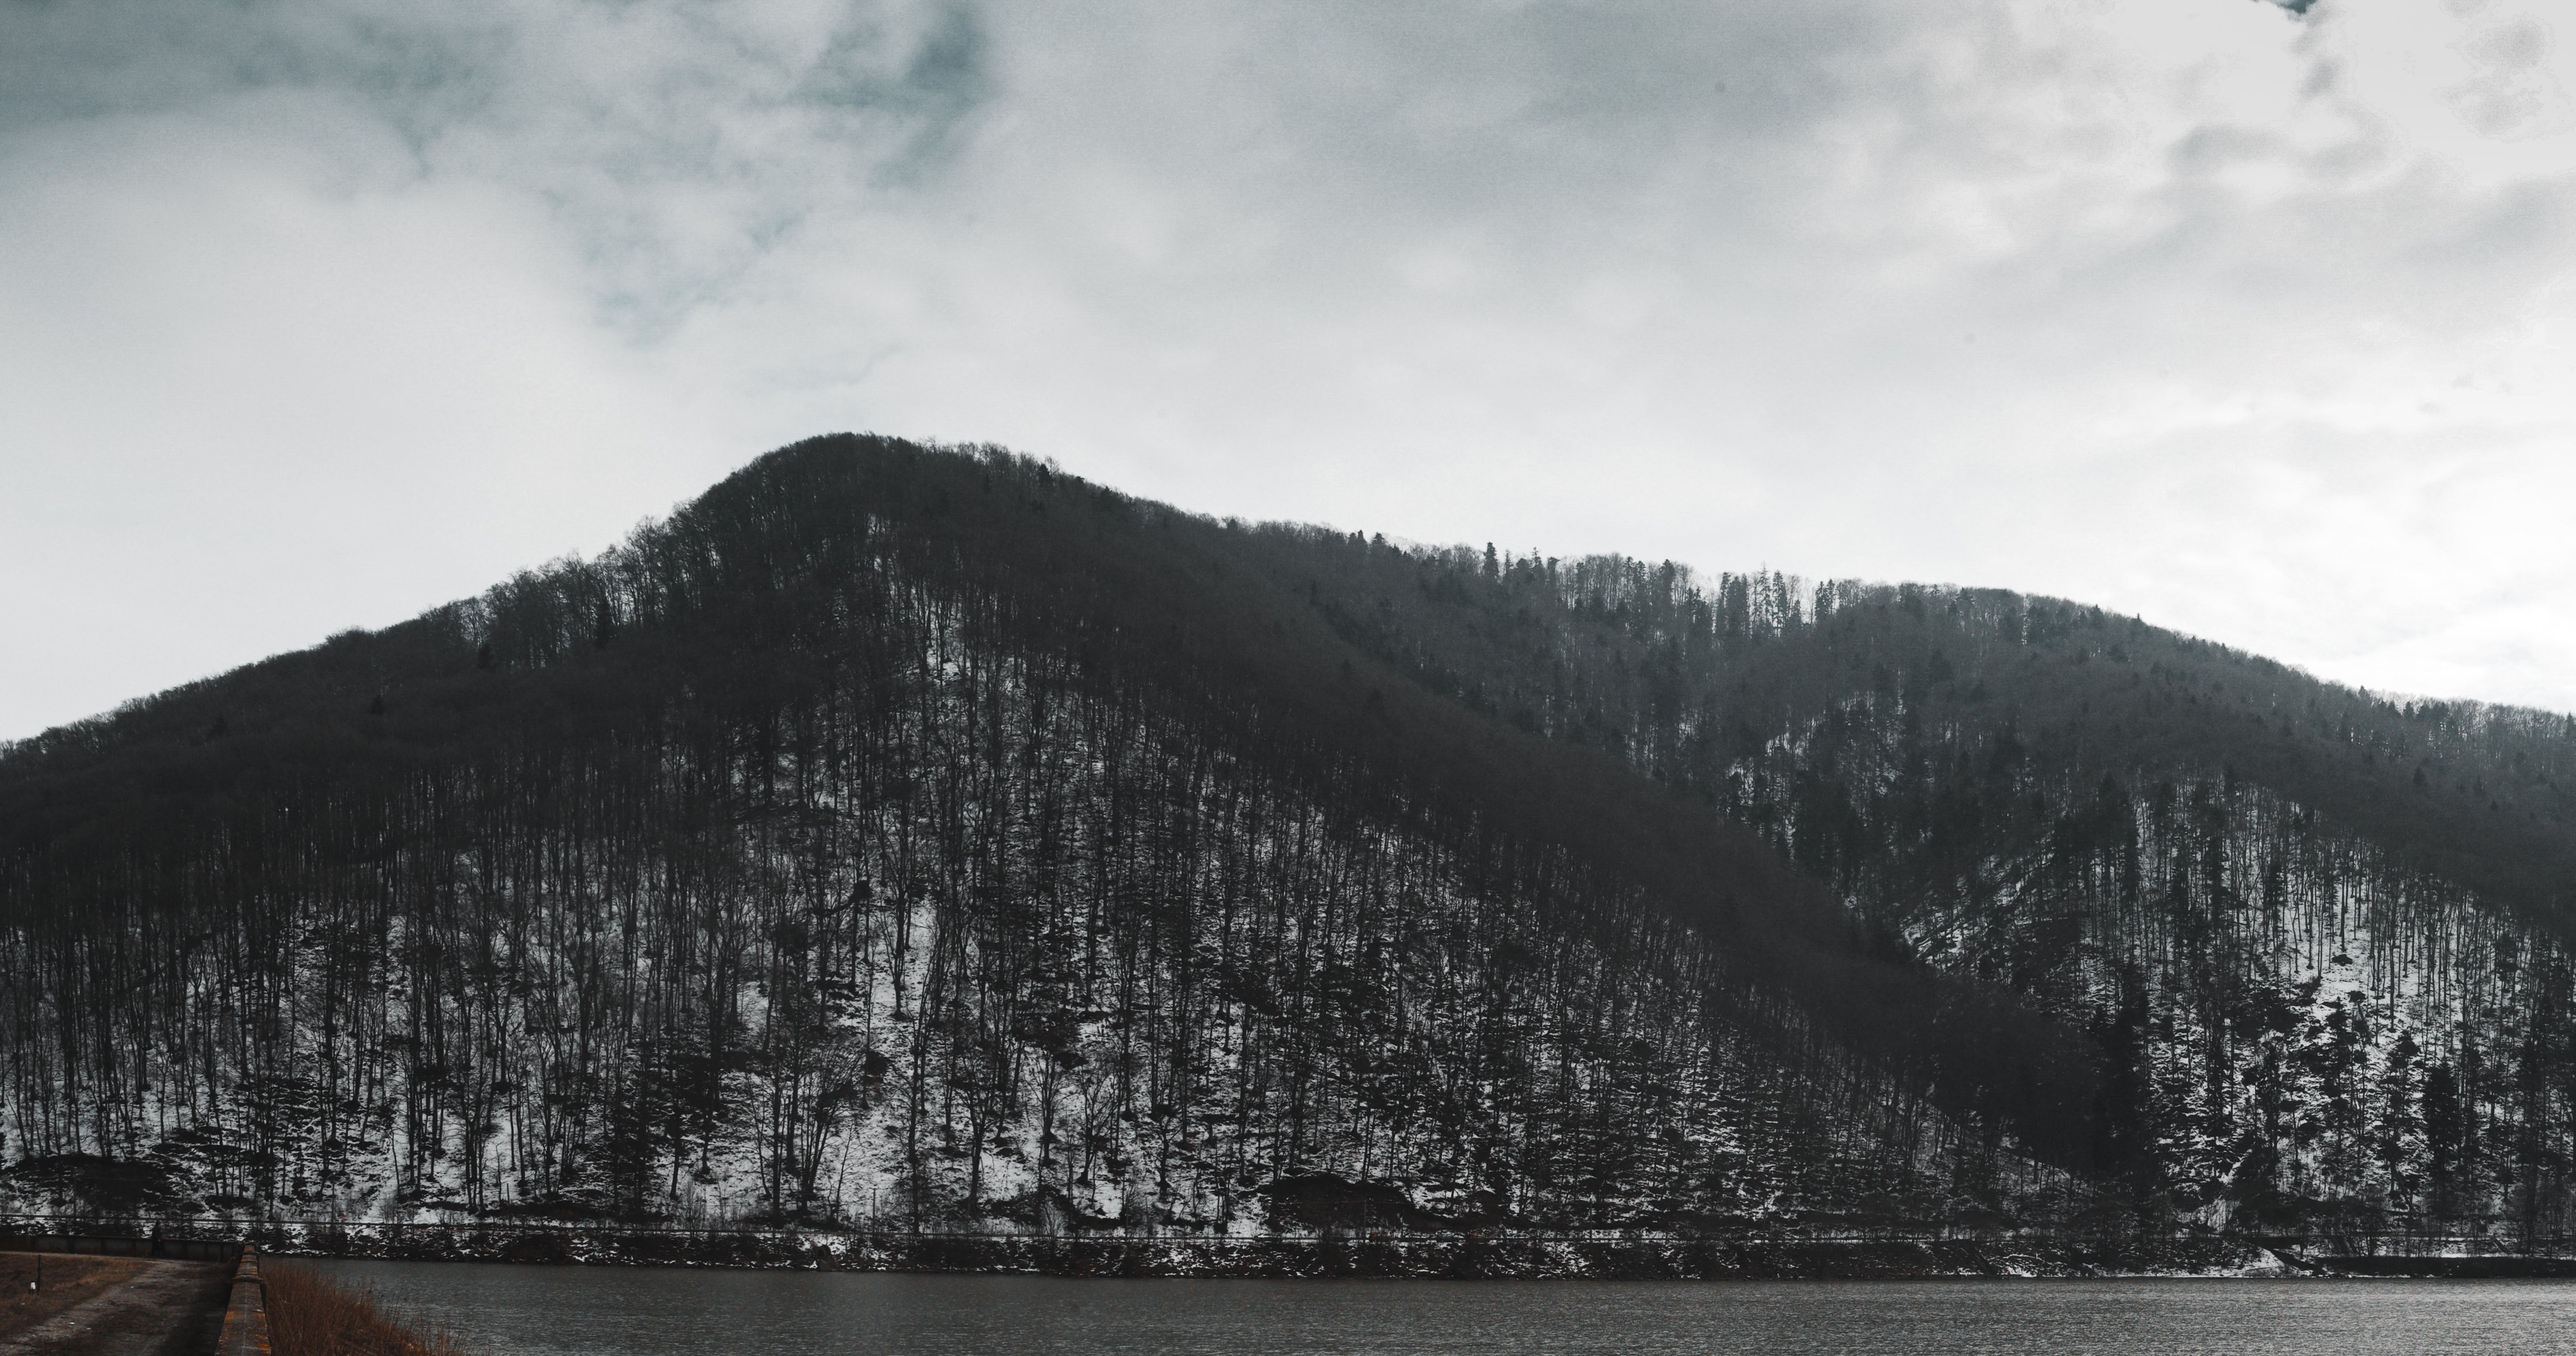 Grayscale Photo of Mountain and Lake